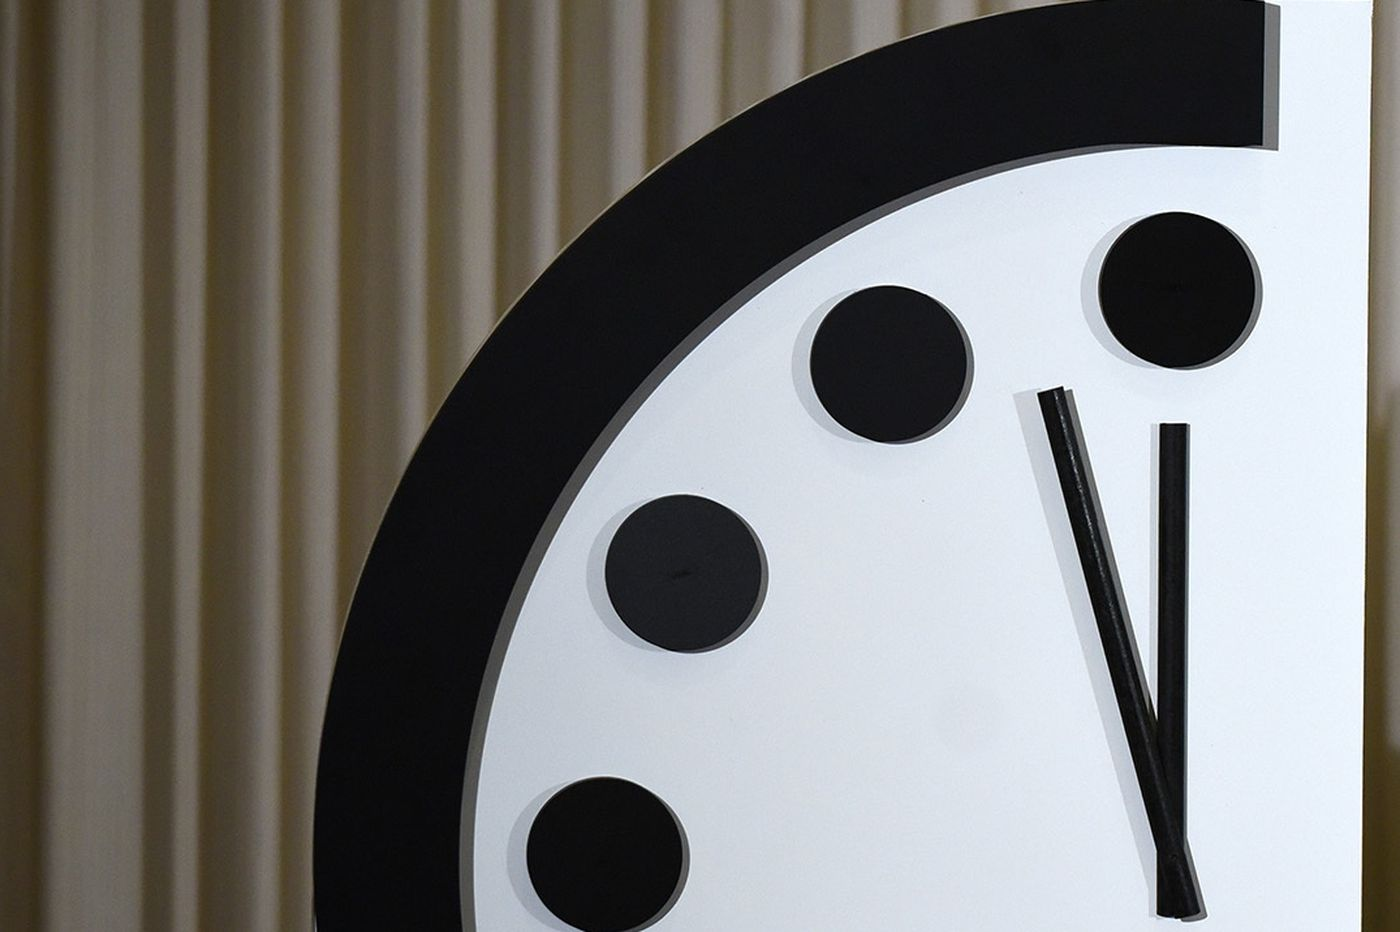 Doomsday Clock is 100 seconds to midnight, the symbolic hour of the apocalypse